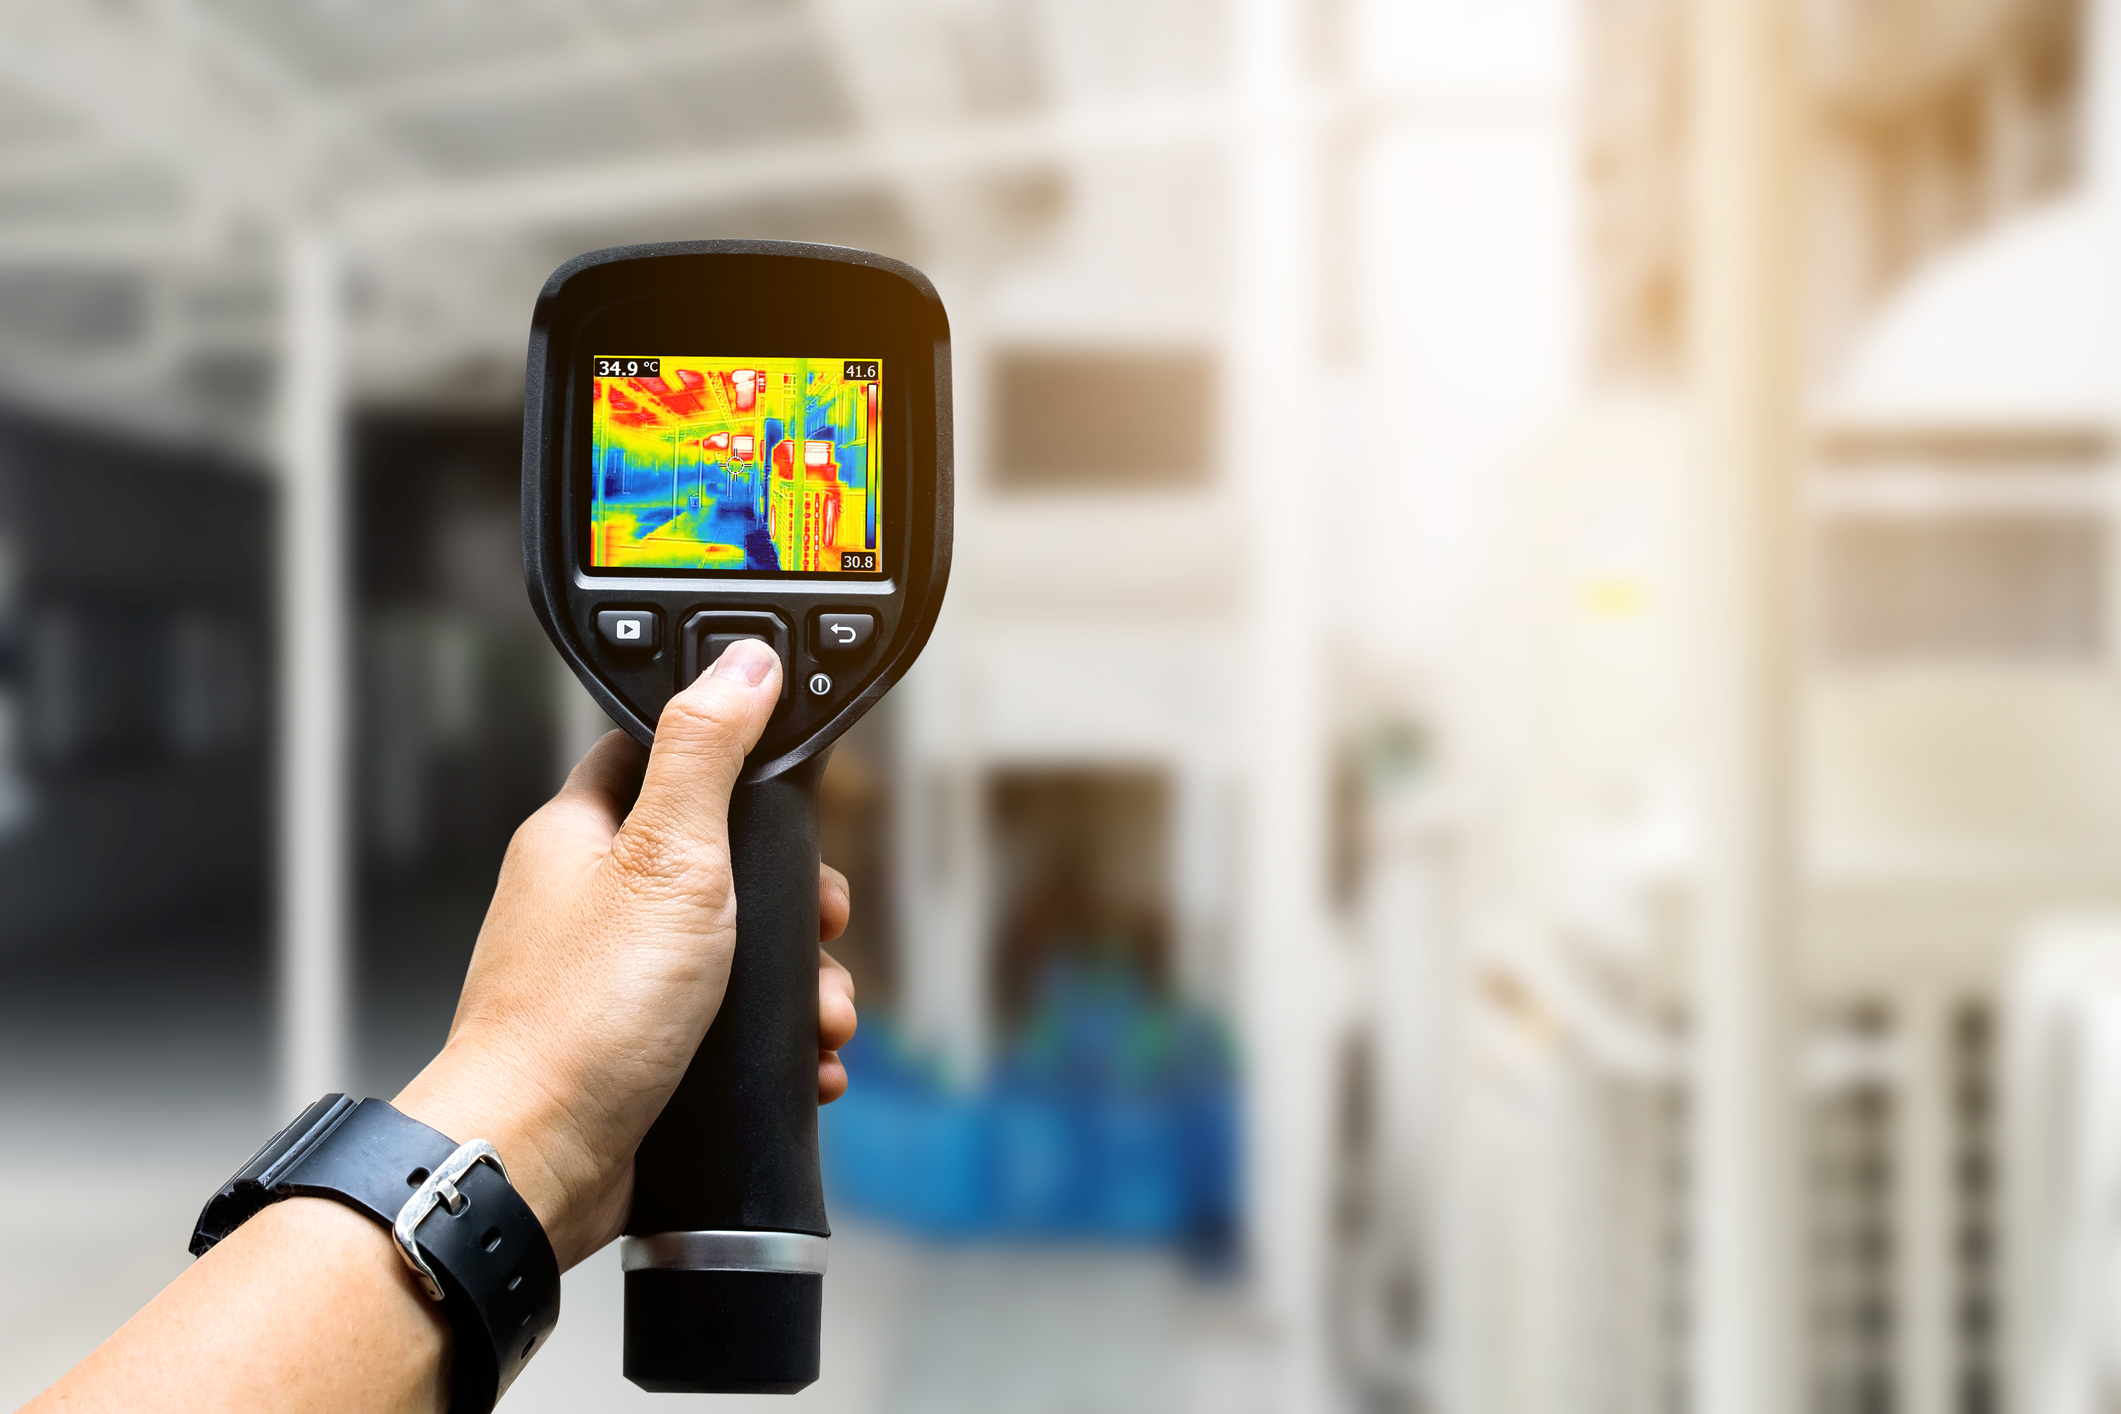 Technician using a thermal imaging camera